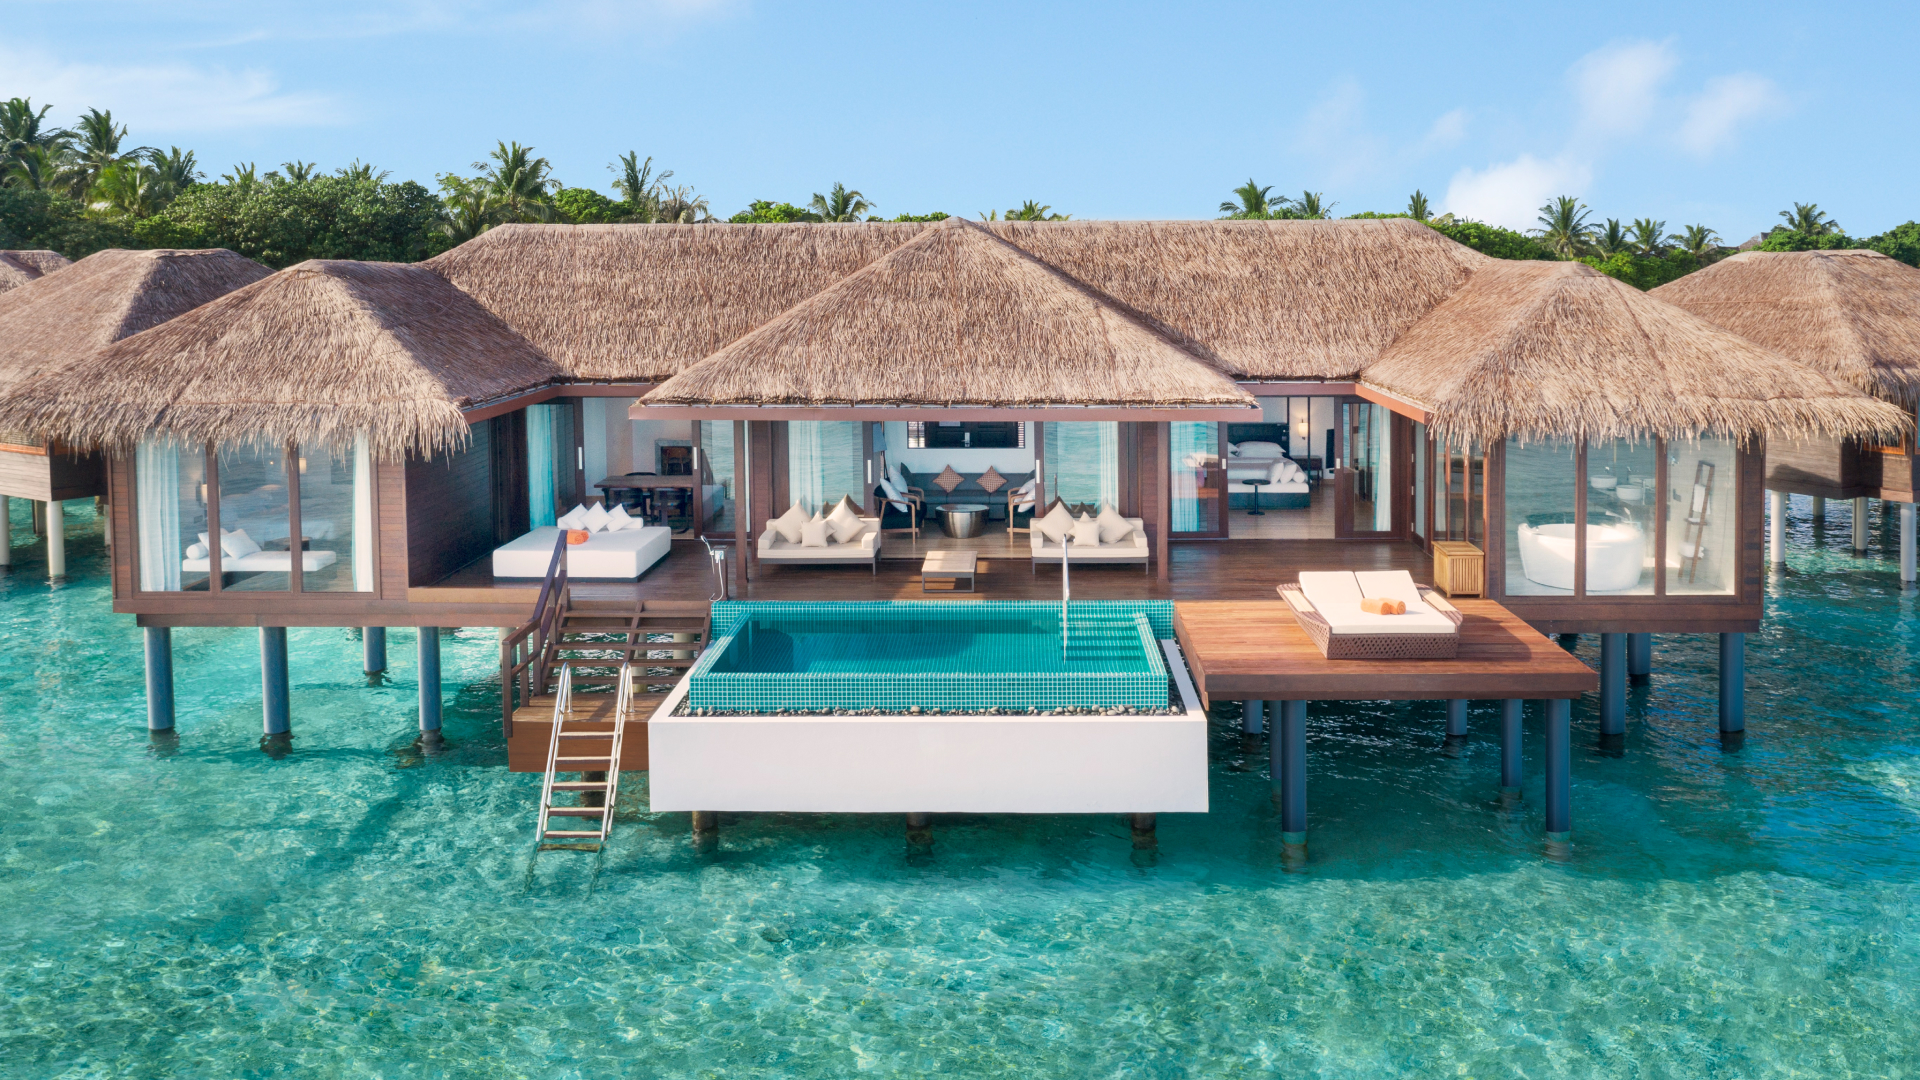 Header-SHE_MLESI_2_Bedroom_Water_Villa_With_Pool_Areal shot_01.jpg